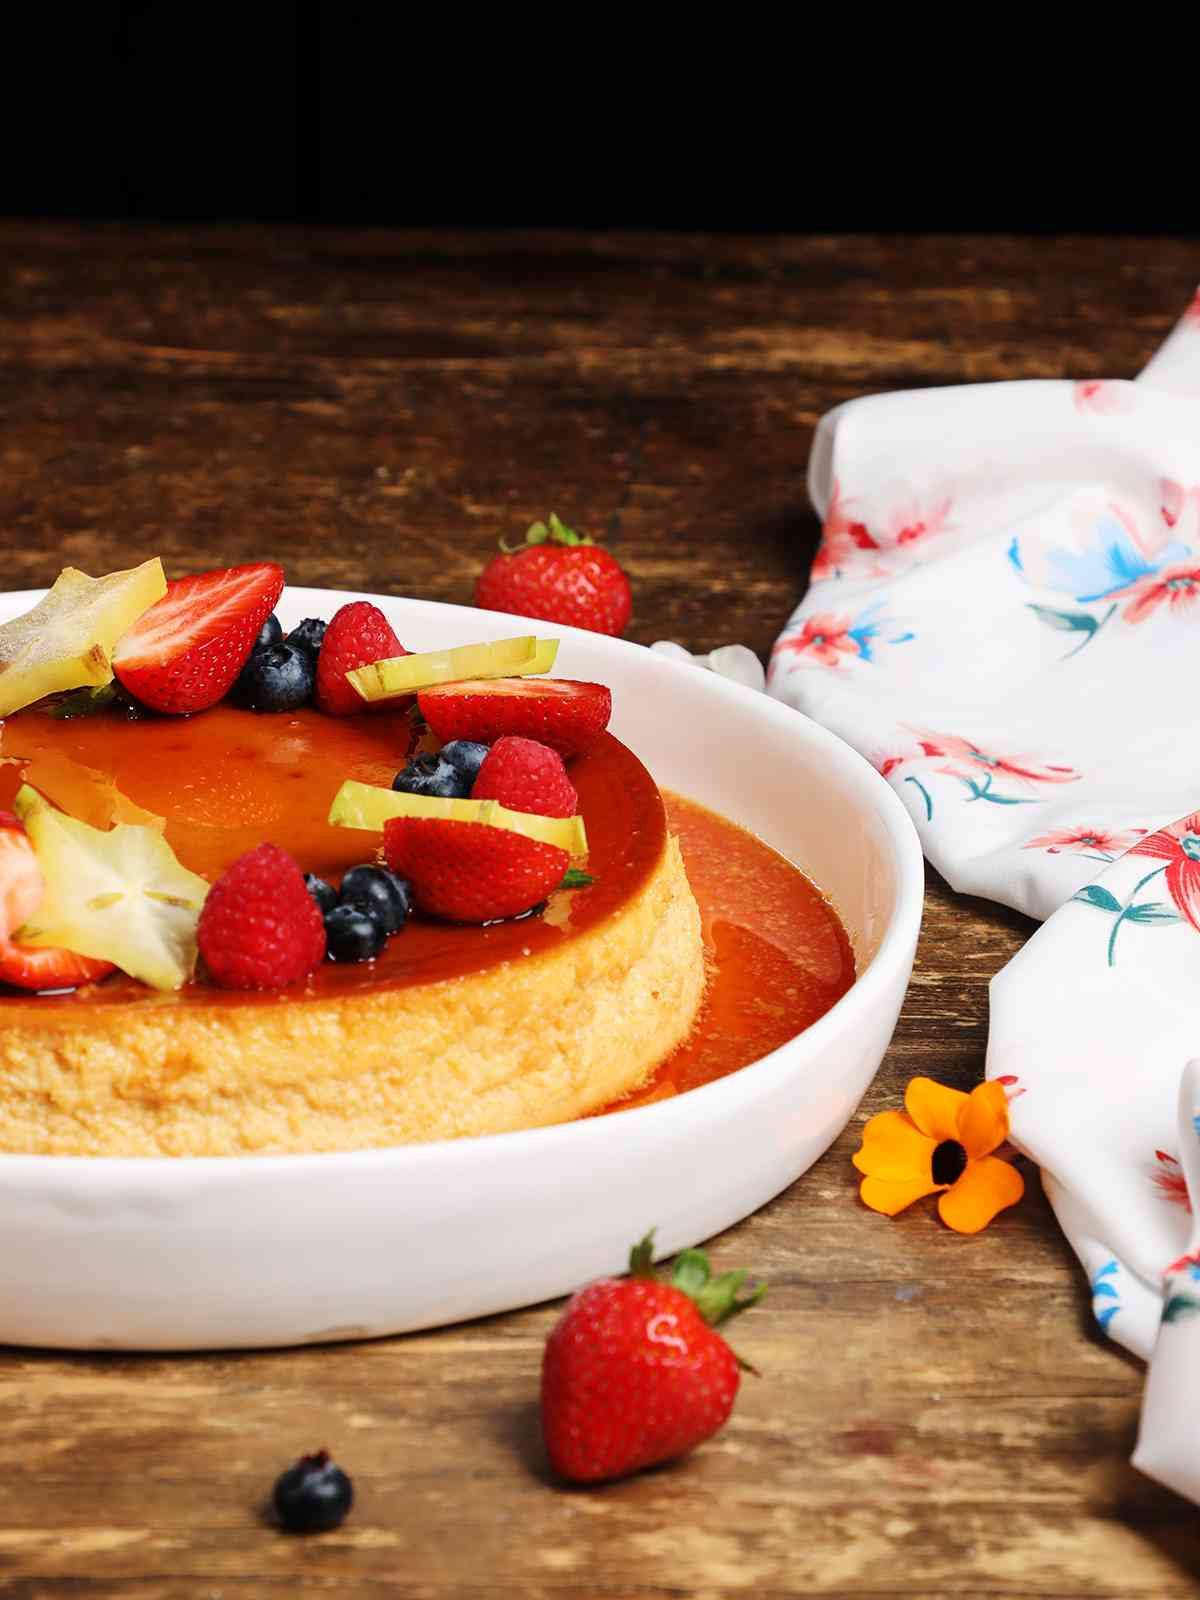 Mexican Flan Napolitano Topped with Fruit